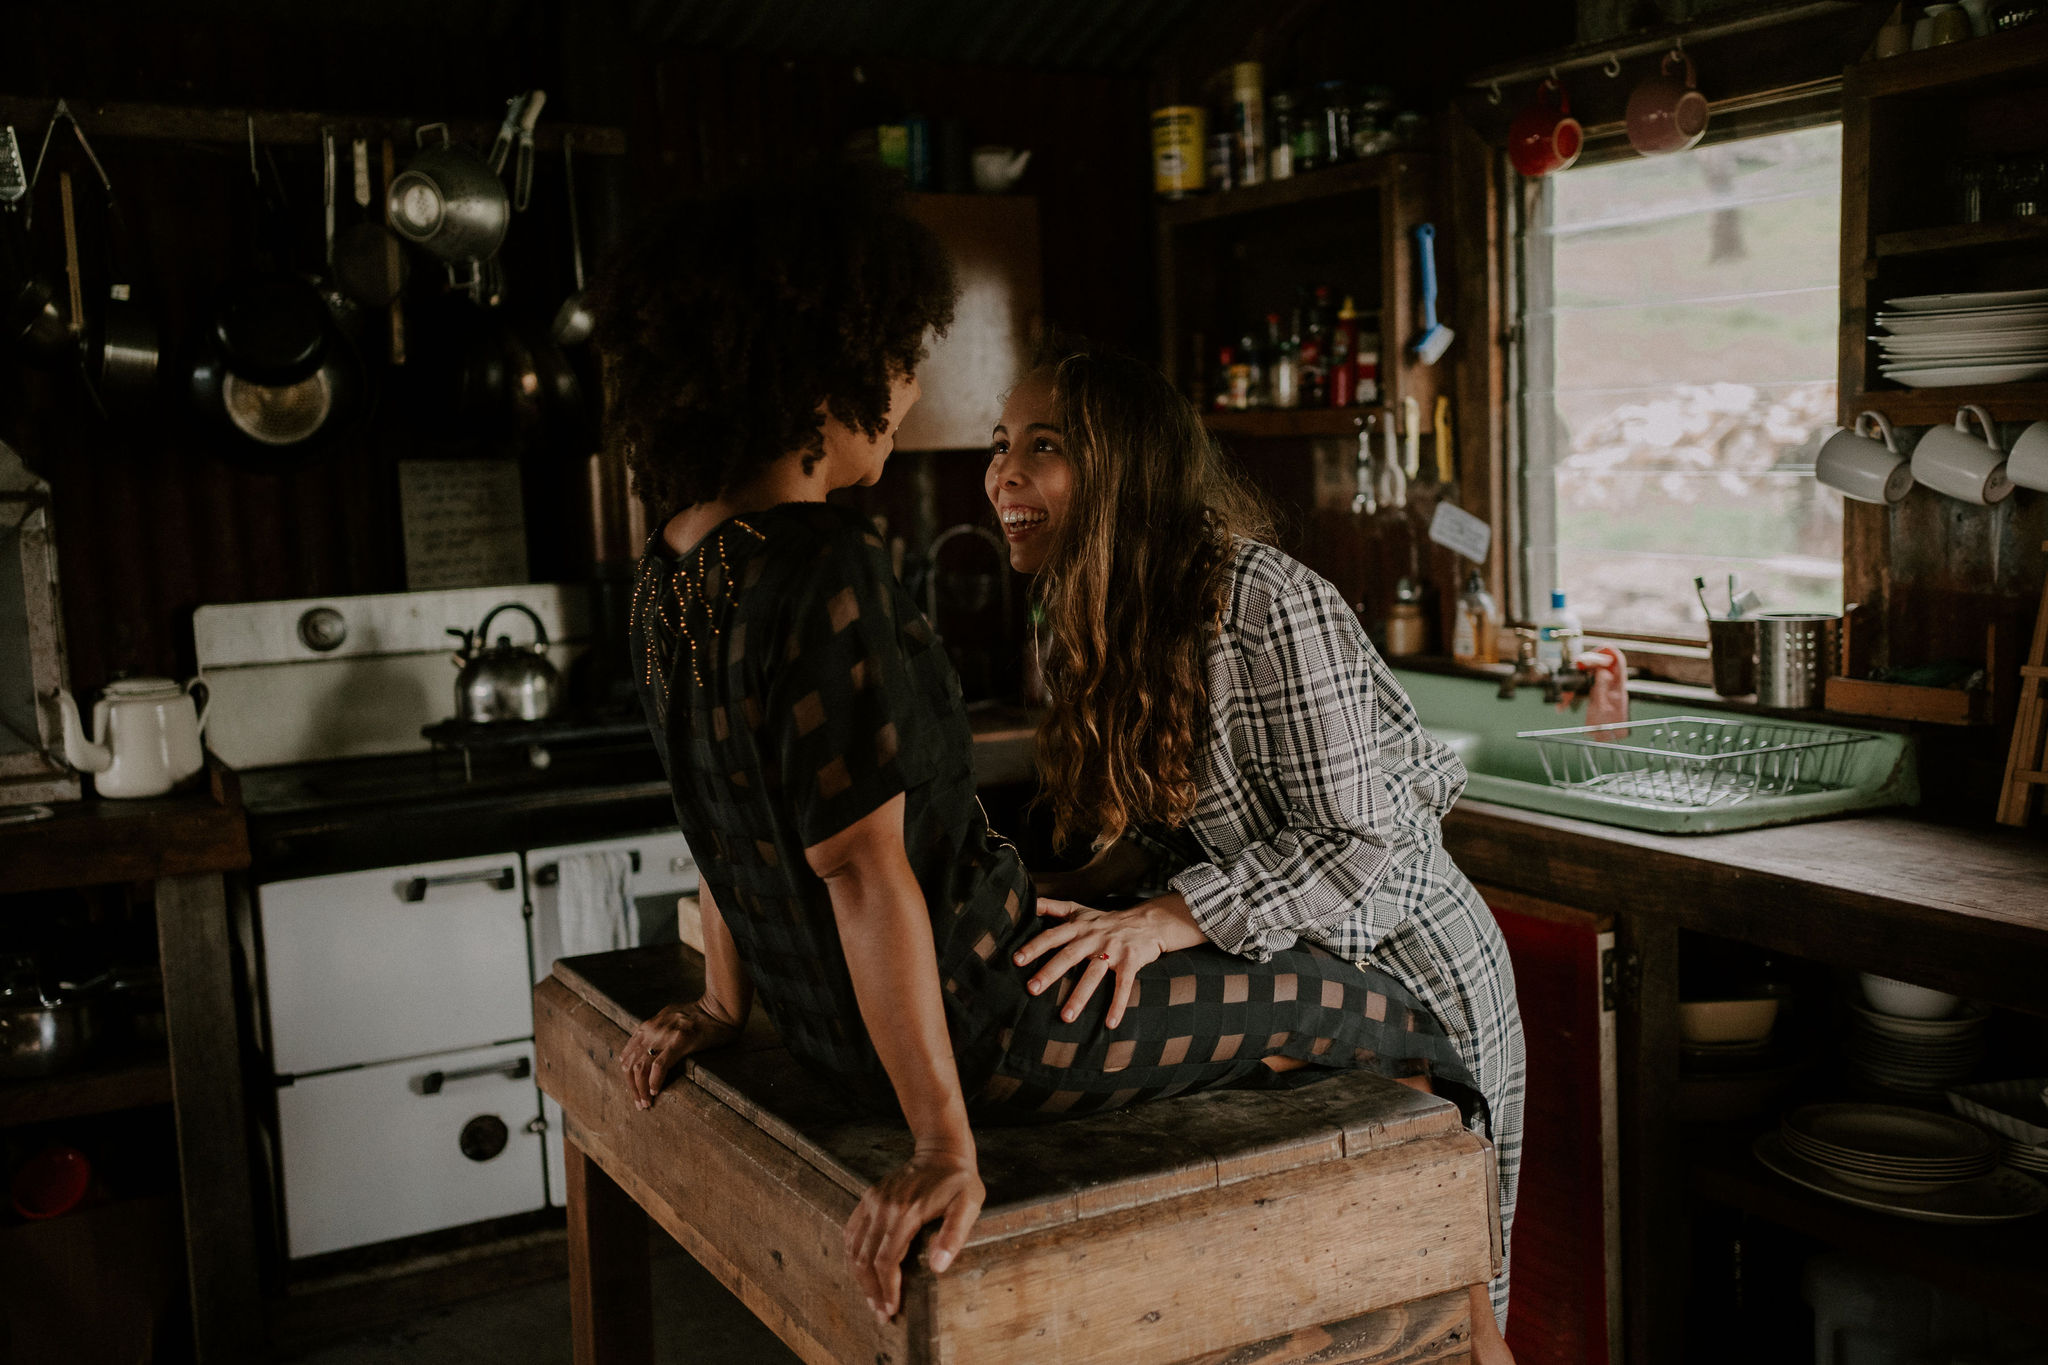 Fox & Kin new south wales Australia lesbian lgbtq+ love elopement photography Dancing With Her magazine (1)